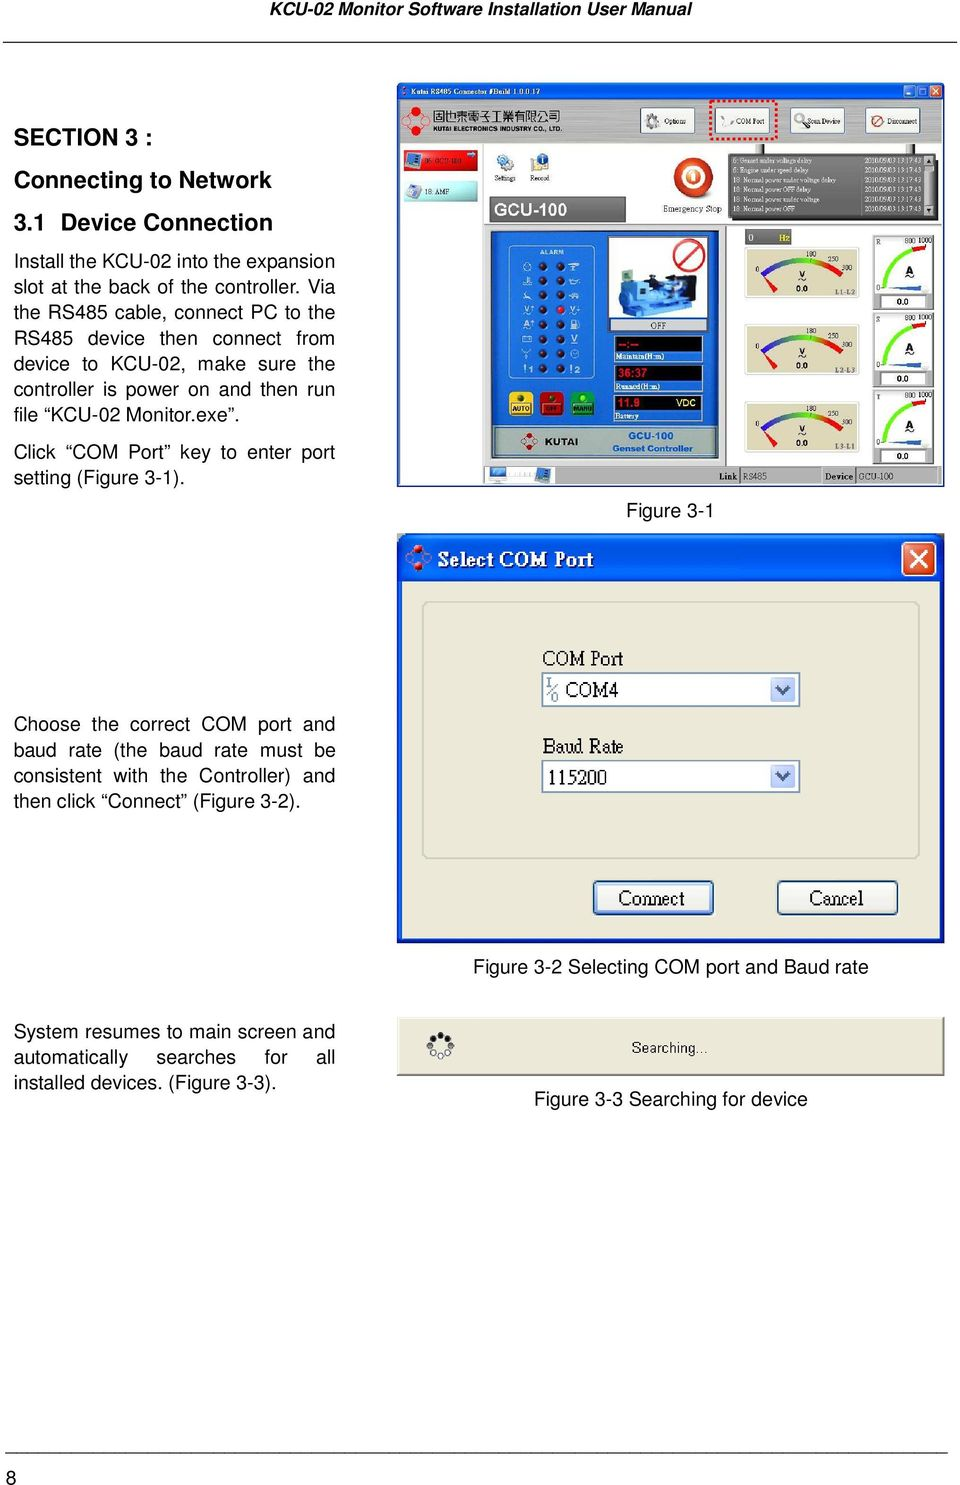 Click COM Port key to enter port setting (Figure 3-1).